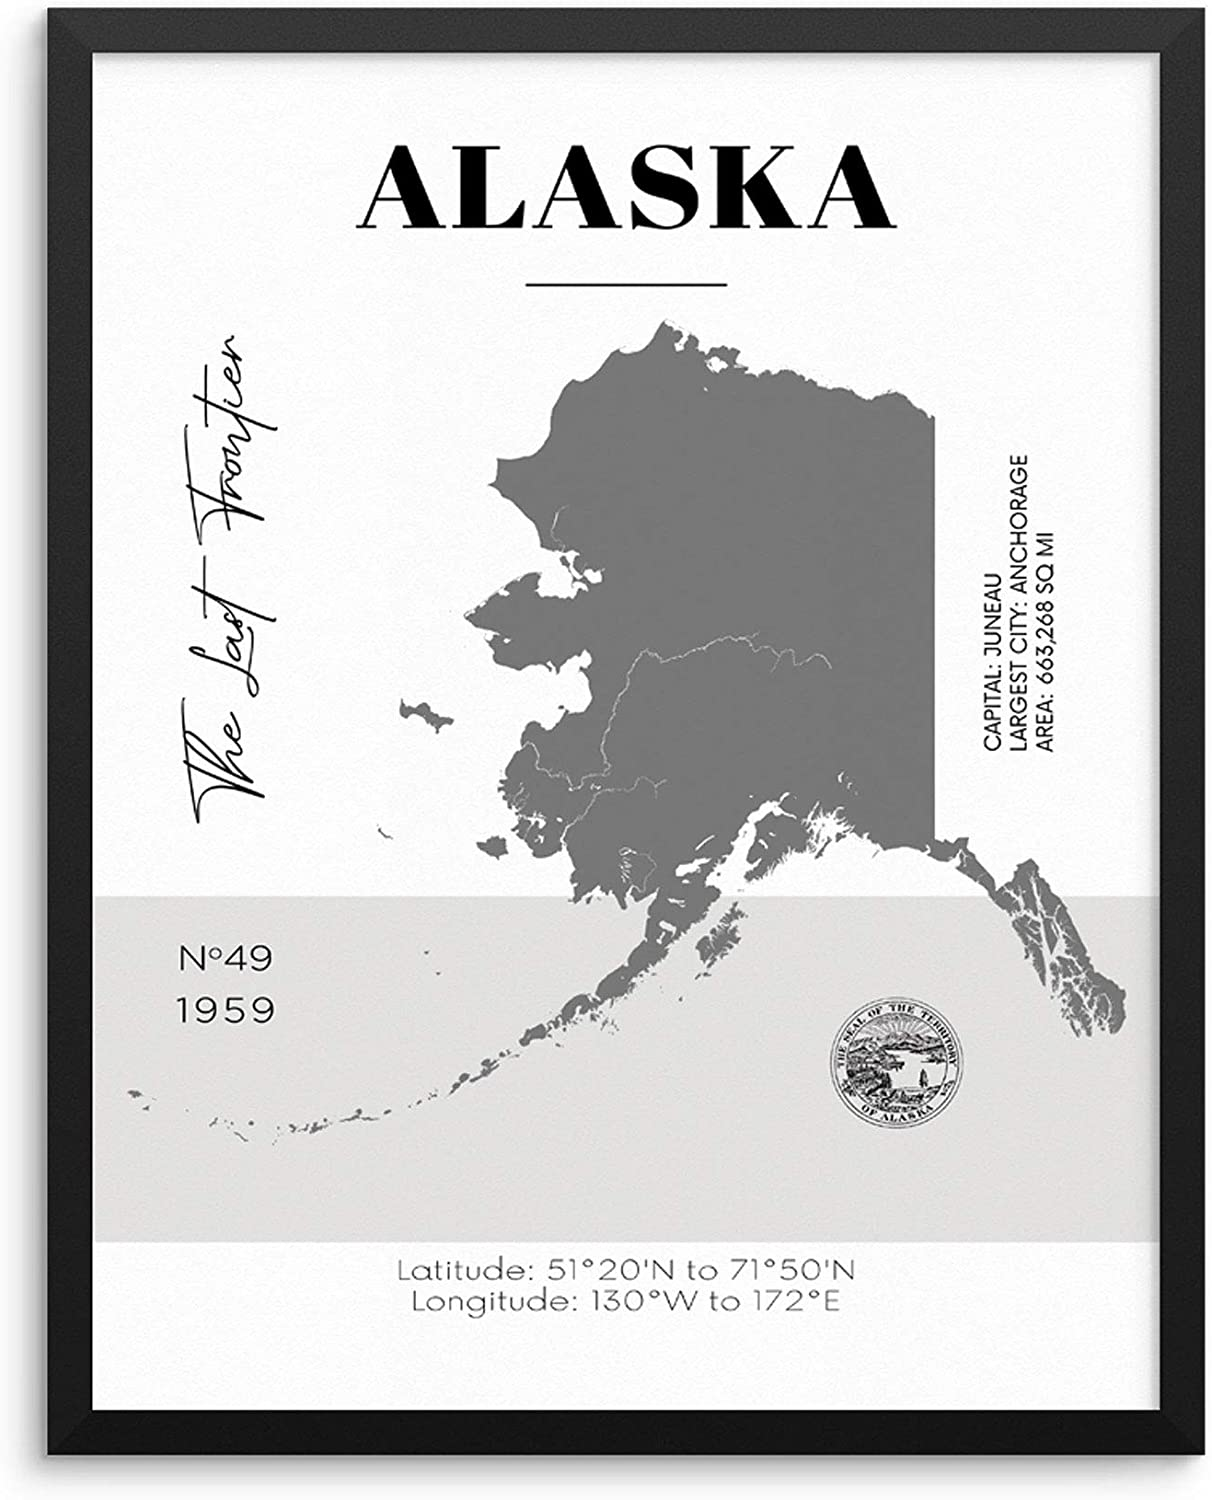 Alaska State Map Poster With Demographics Minimalist Home Decor Travel Art  Print 20x20 UNFRAMED Trendy Artwork for Bedroom Living Room Entryway Office  ...